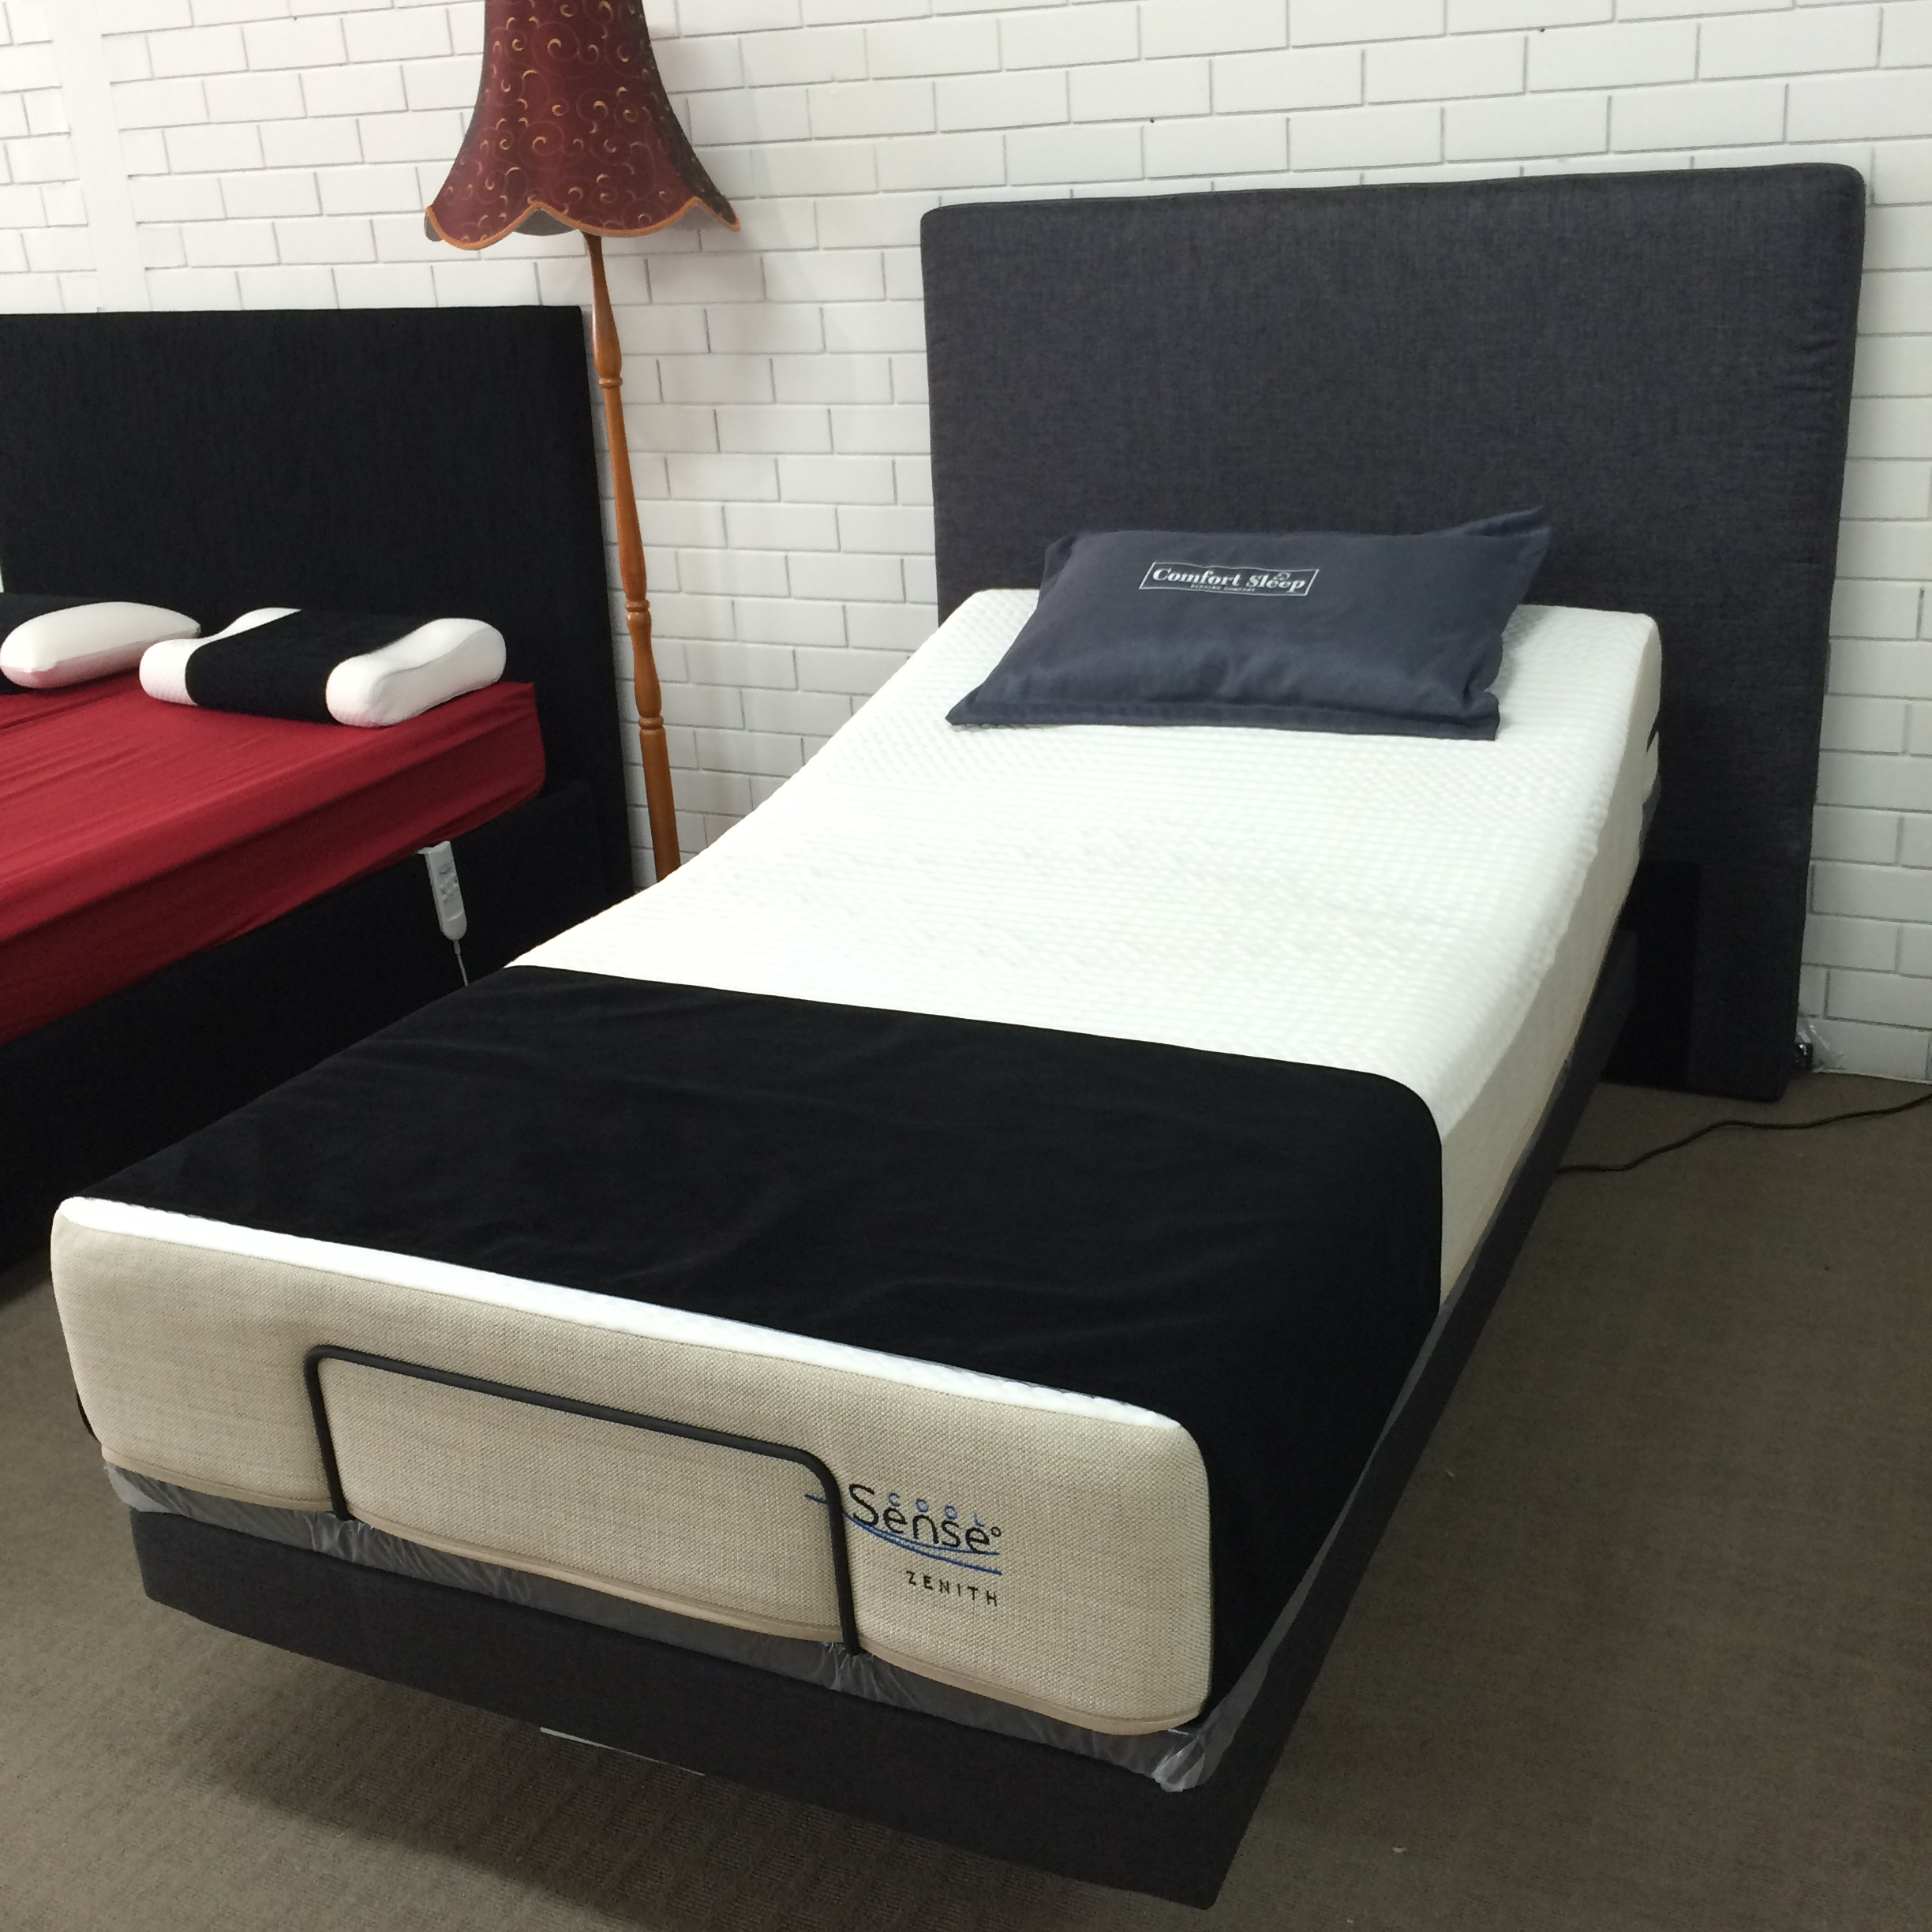 Reverie Adjustable Bed 7s Textured Motionflex Base With Zenith Cool Sense Mattress King Single